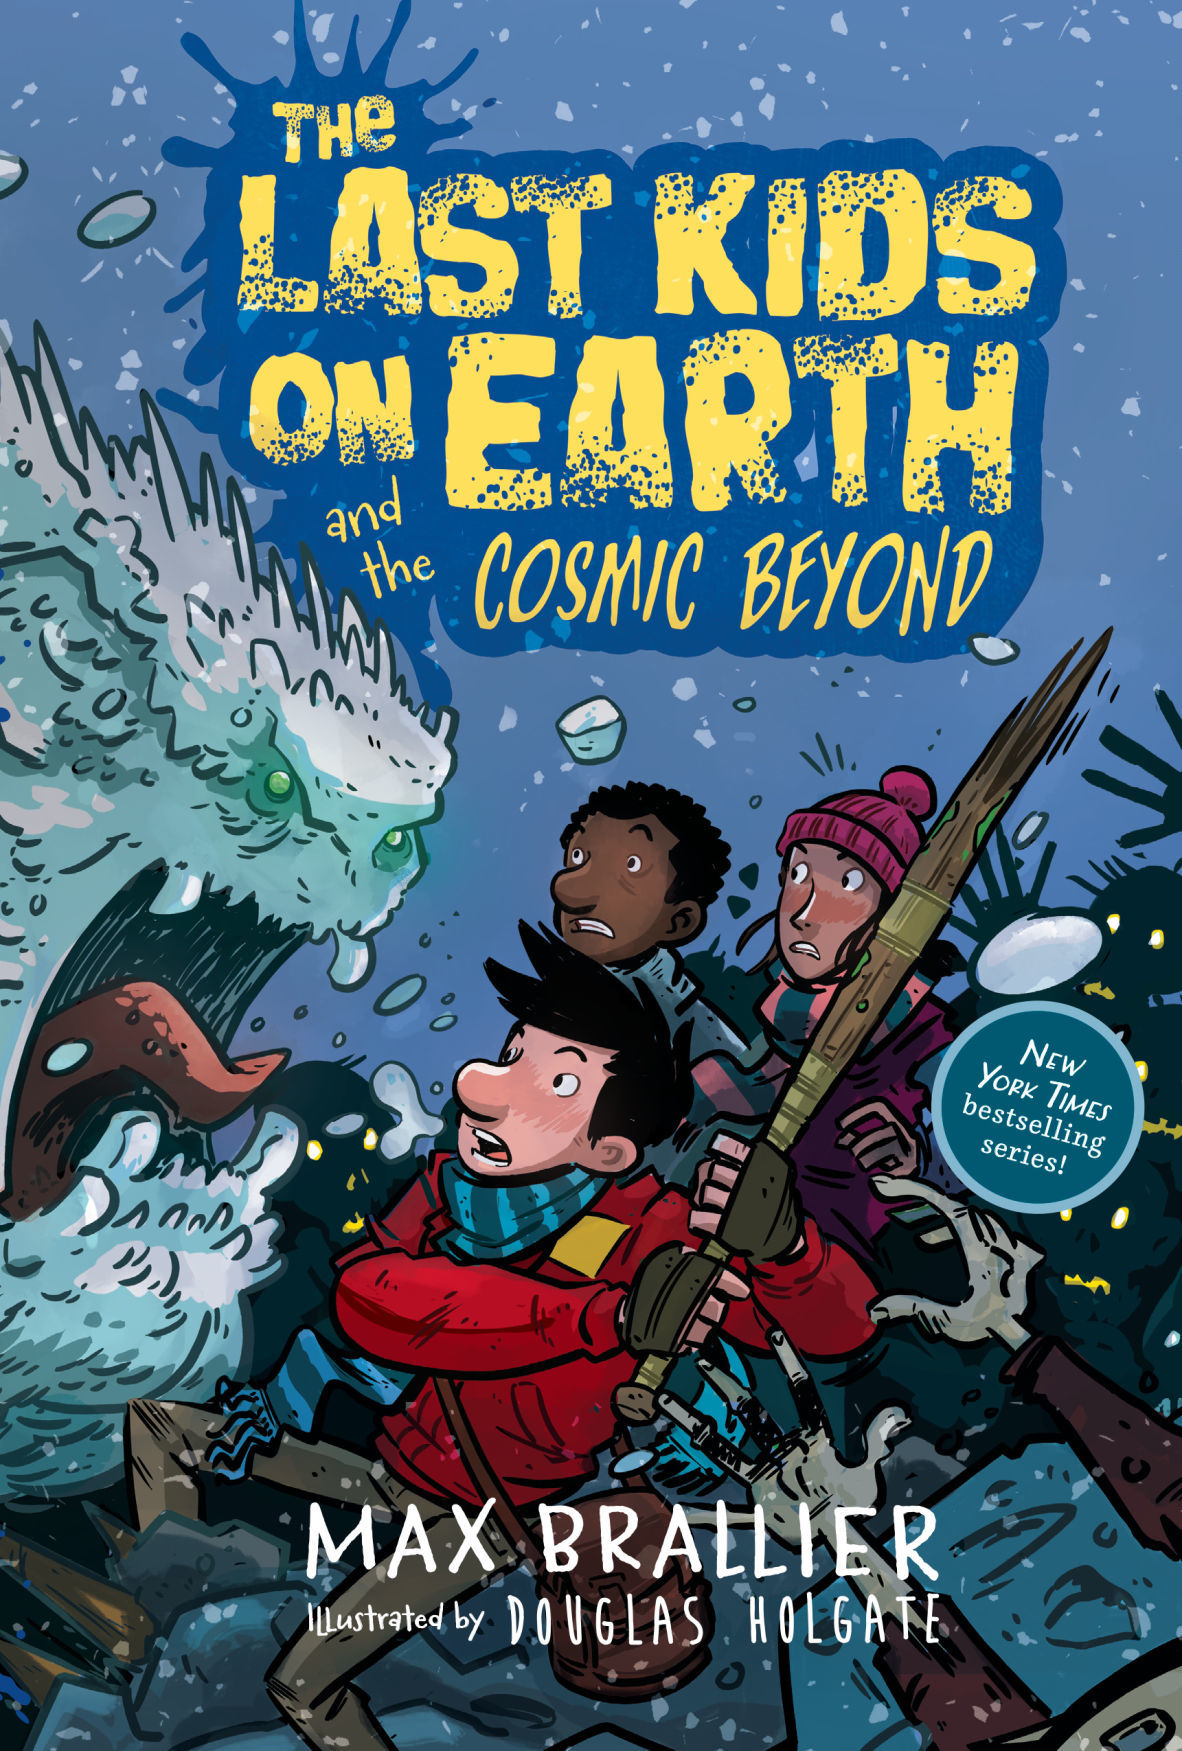 'The Last Kids on Earth and the Cosmic Beyond'